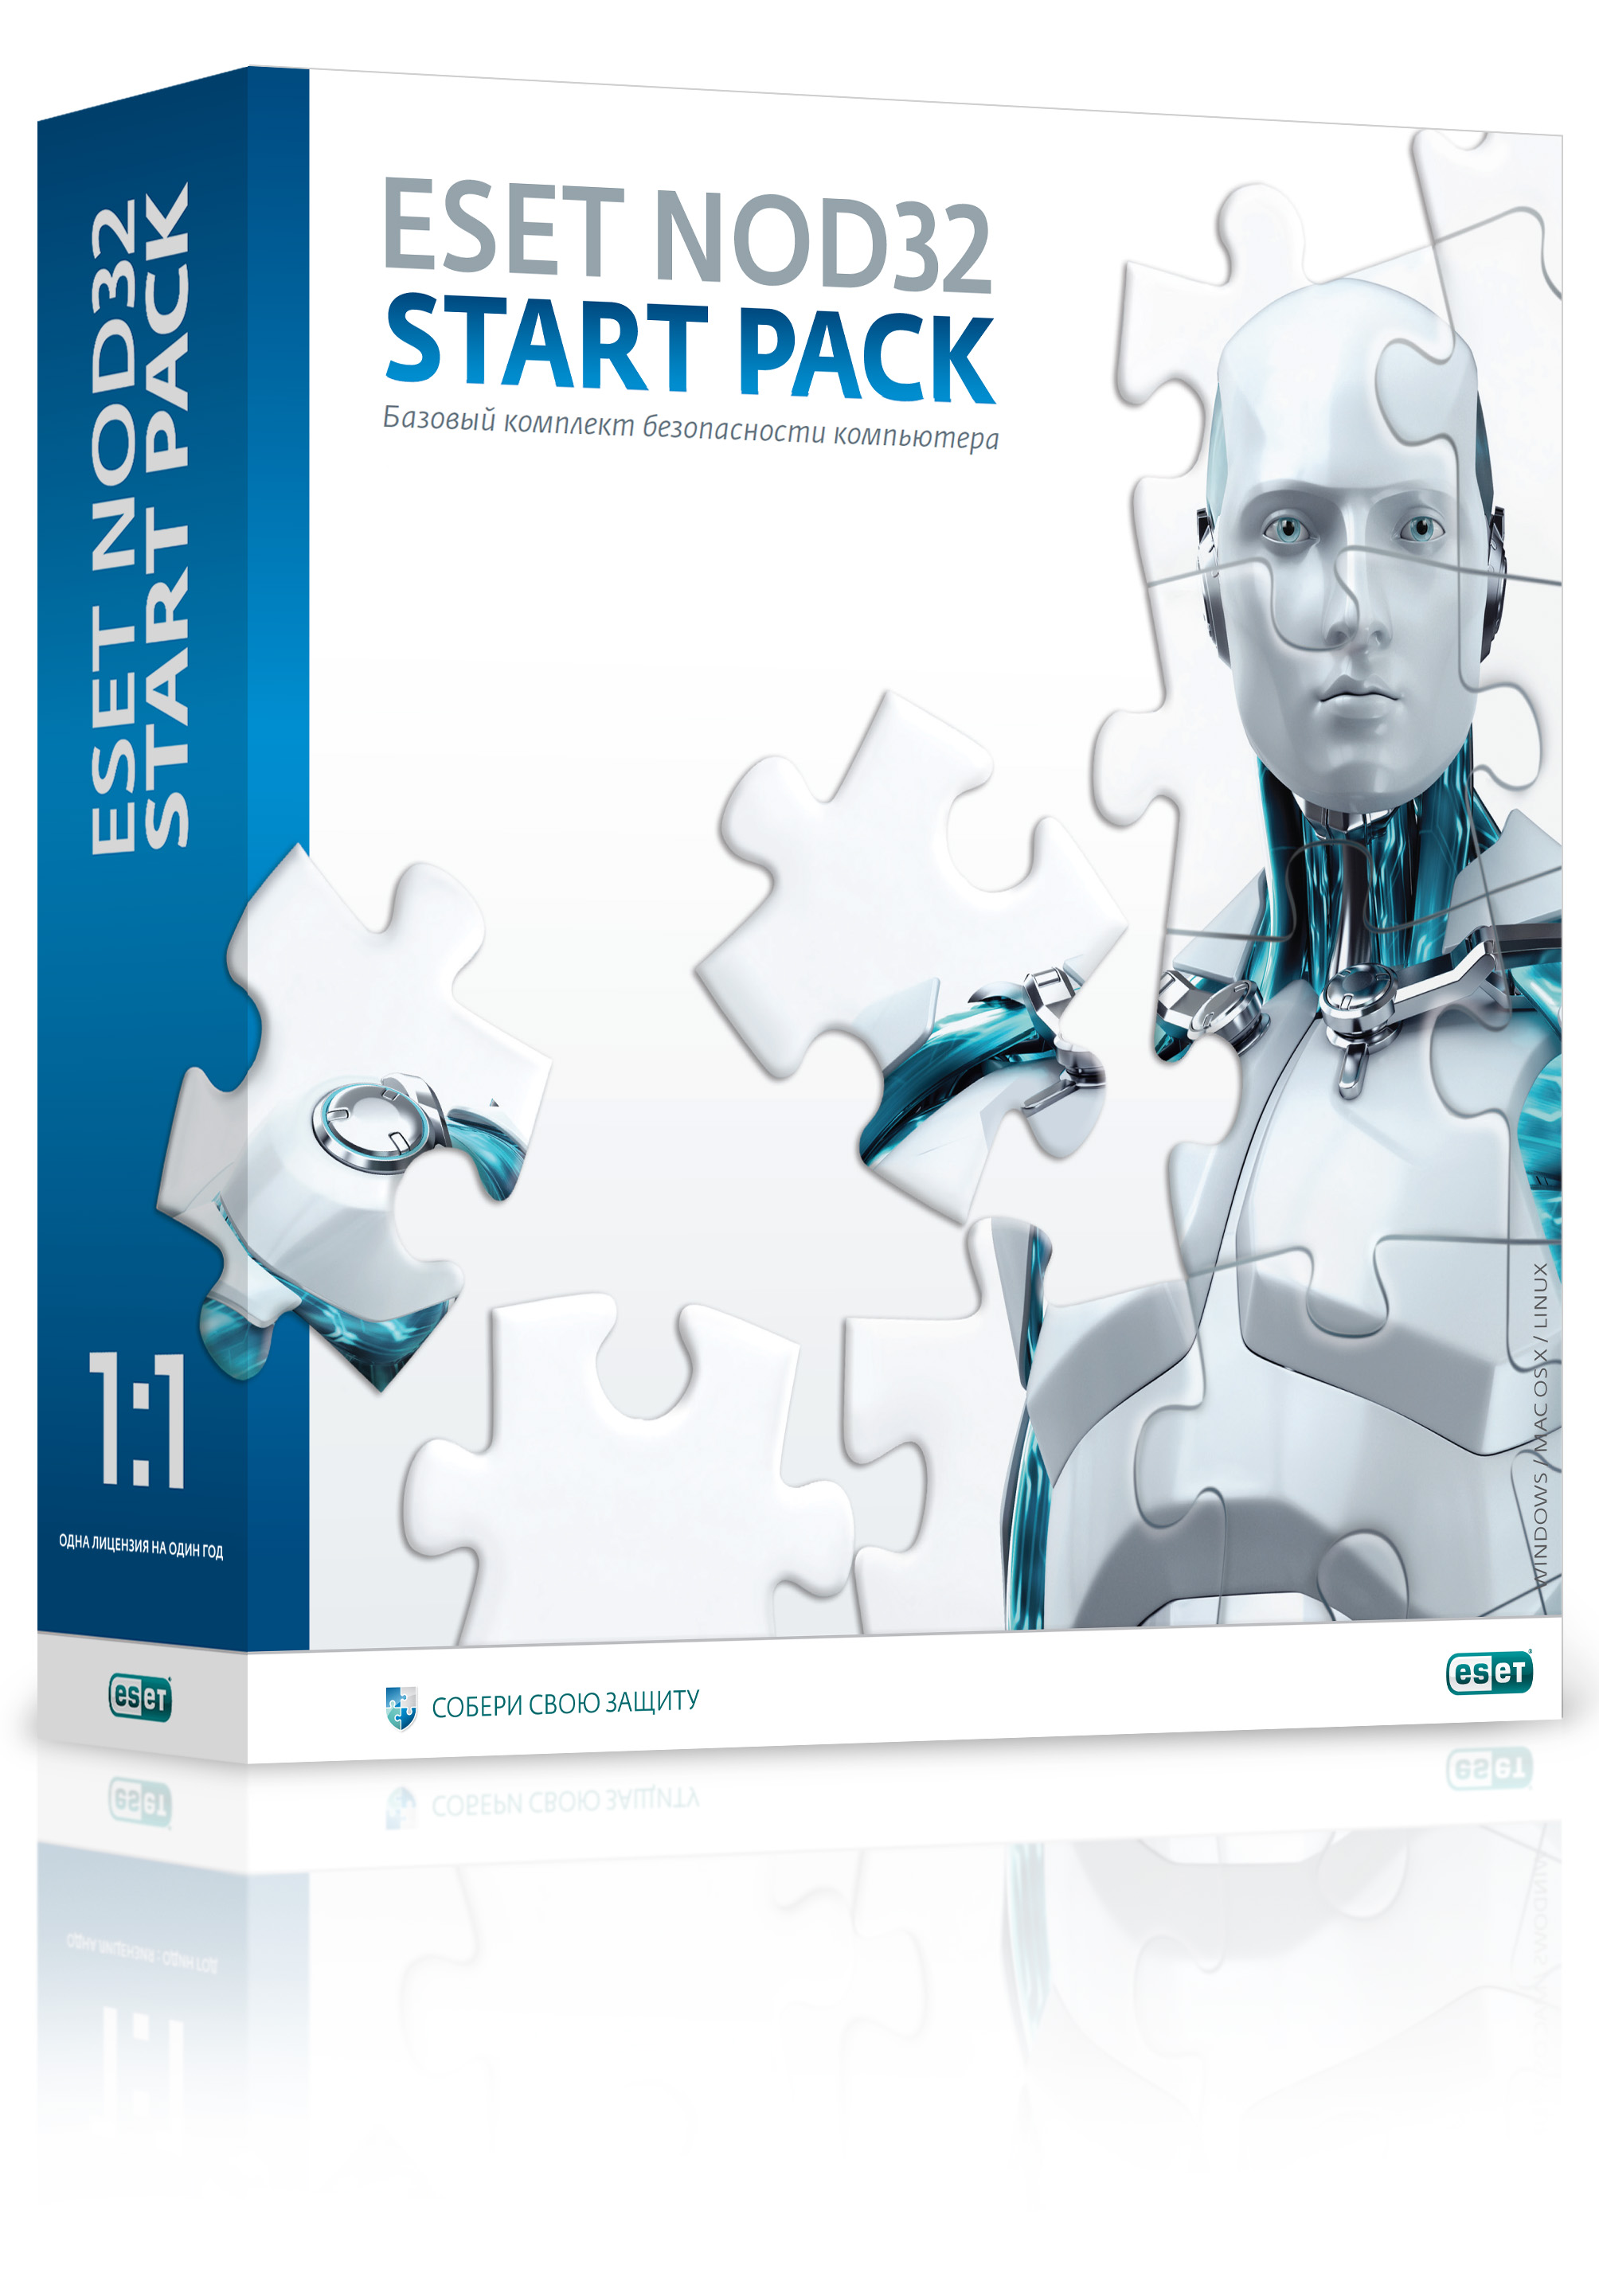 ESET NOD32 START PACK, ����������� ������